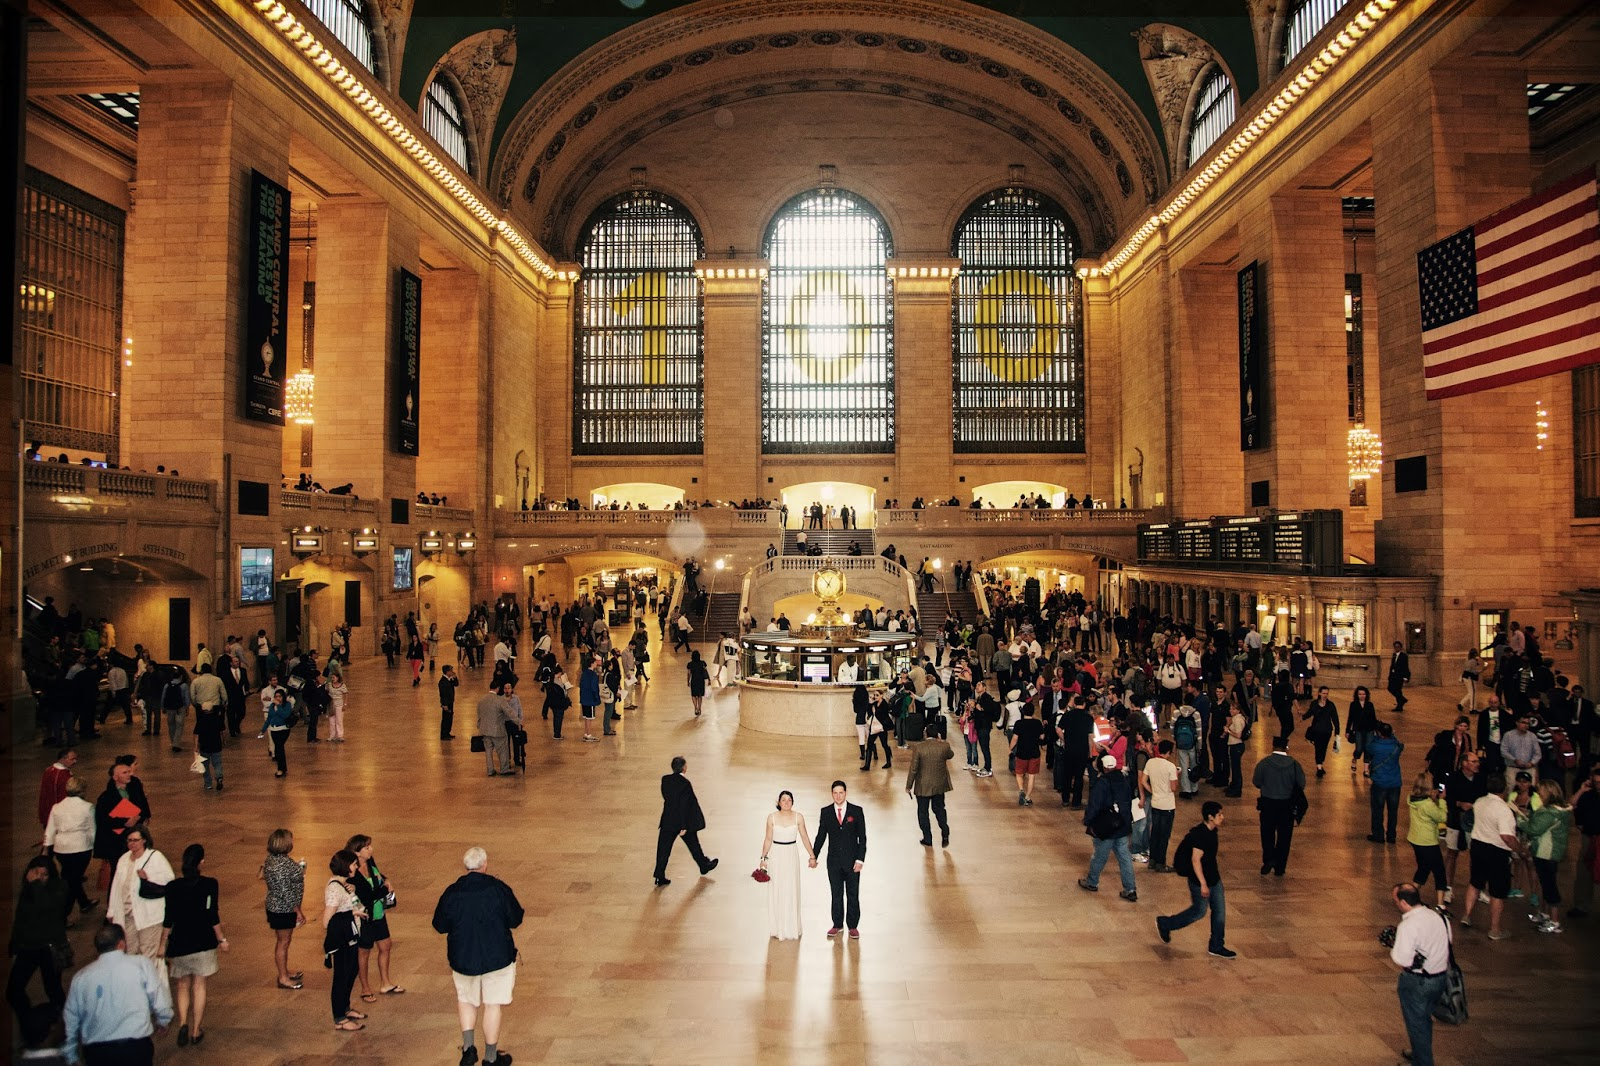 grand central, station, terminal, train, main hall, windows, light, wedding, art deco, 1920s, twenties, NYC, New York, 10 free things to do, free things to do in NYC, travel, New York, explore, adventures, photography, usa, tourism, tourists,